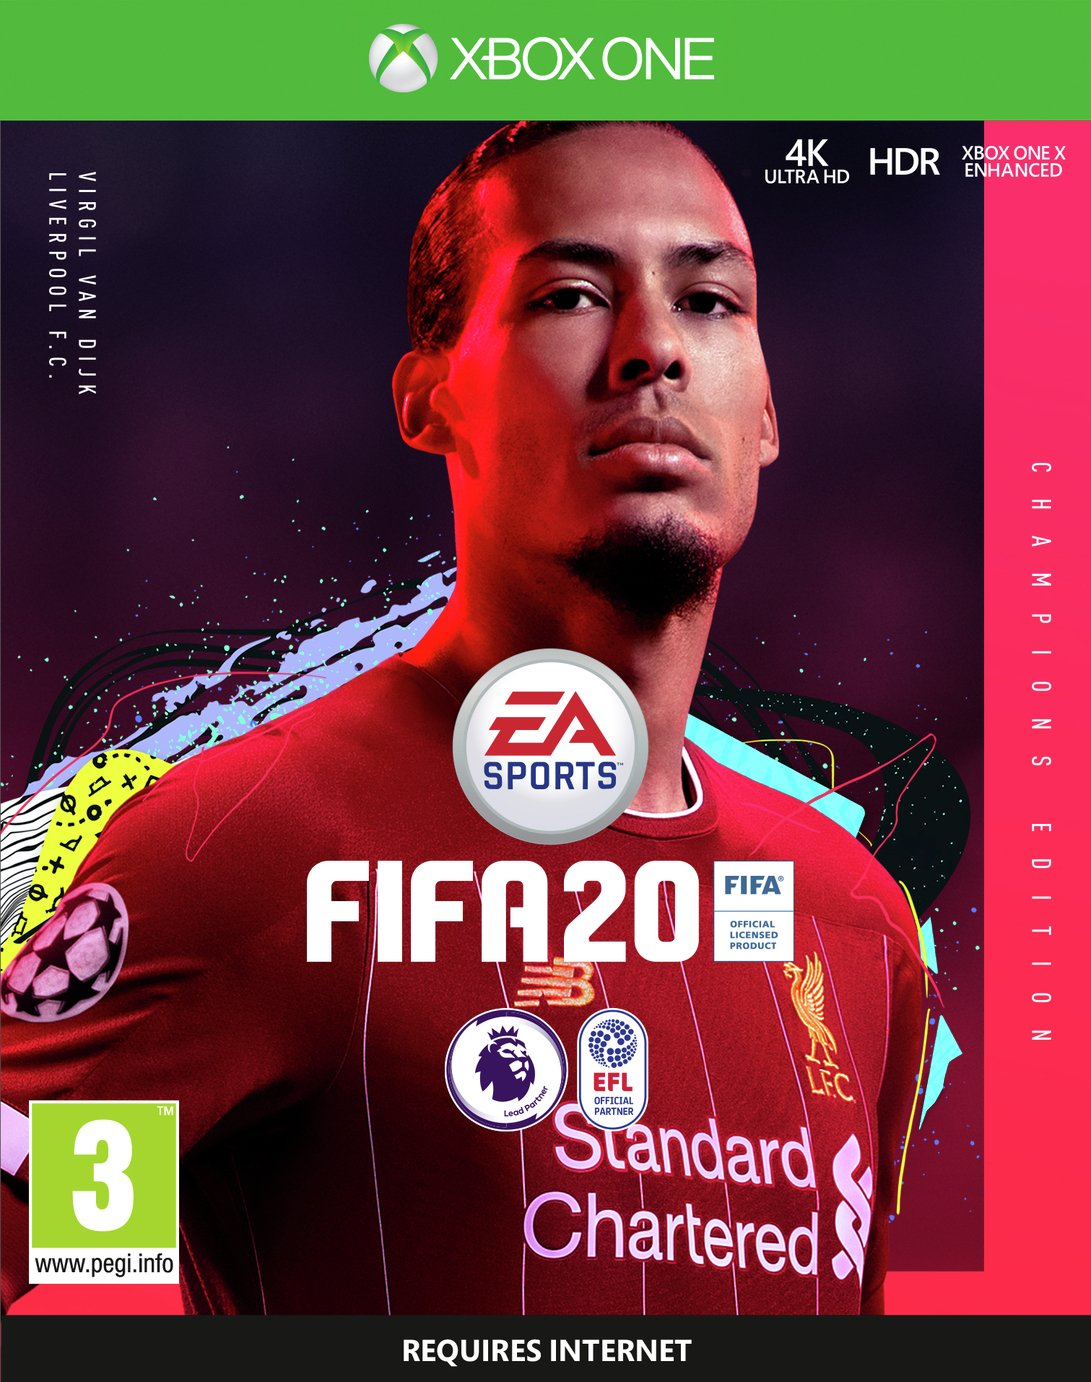 FIFA 20 Champions Edition Xbox One Pre-Order Game